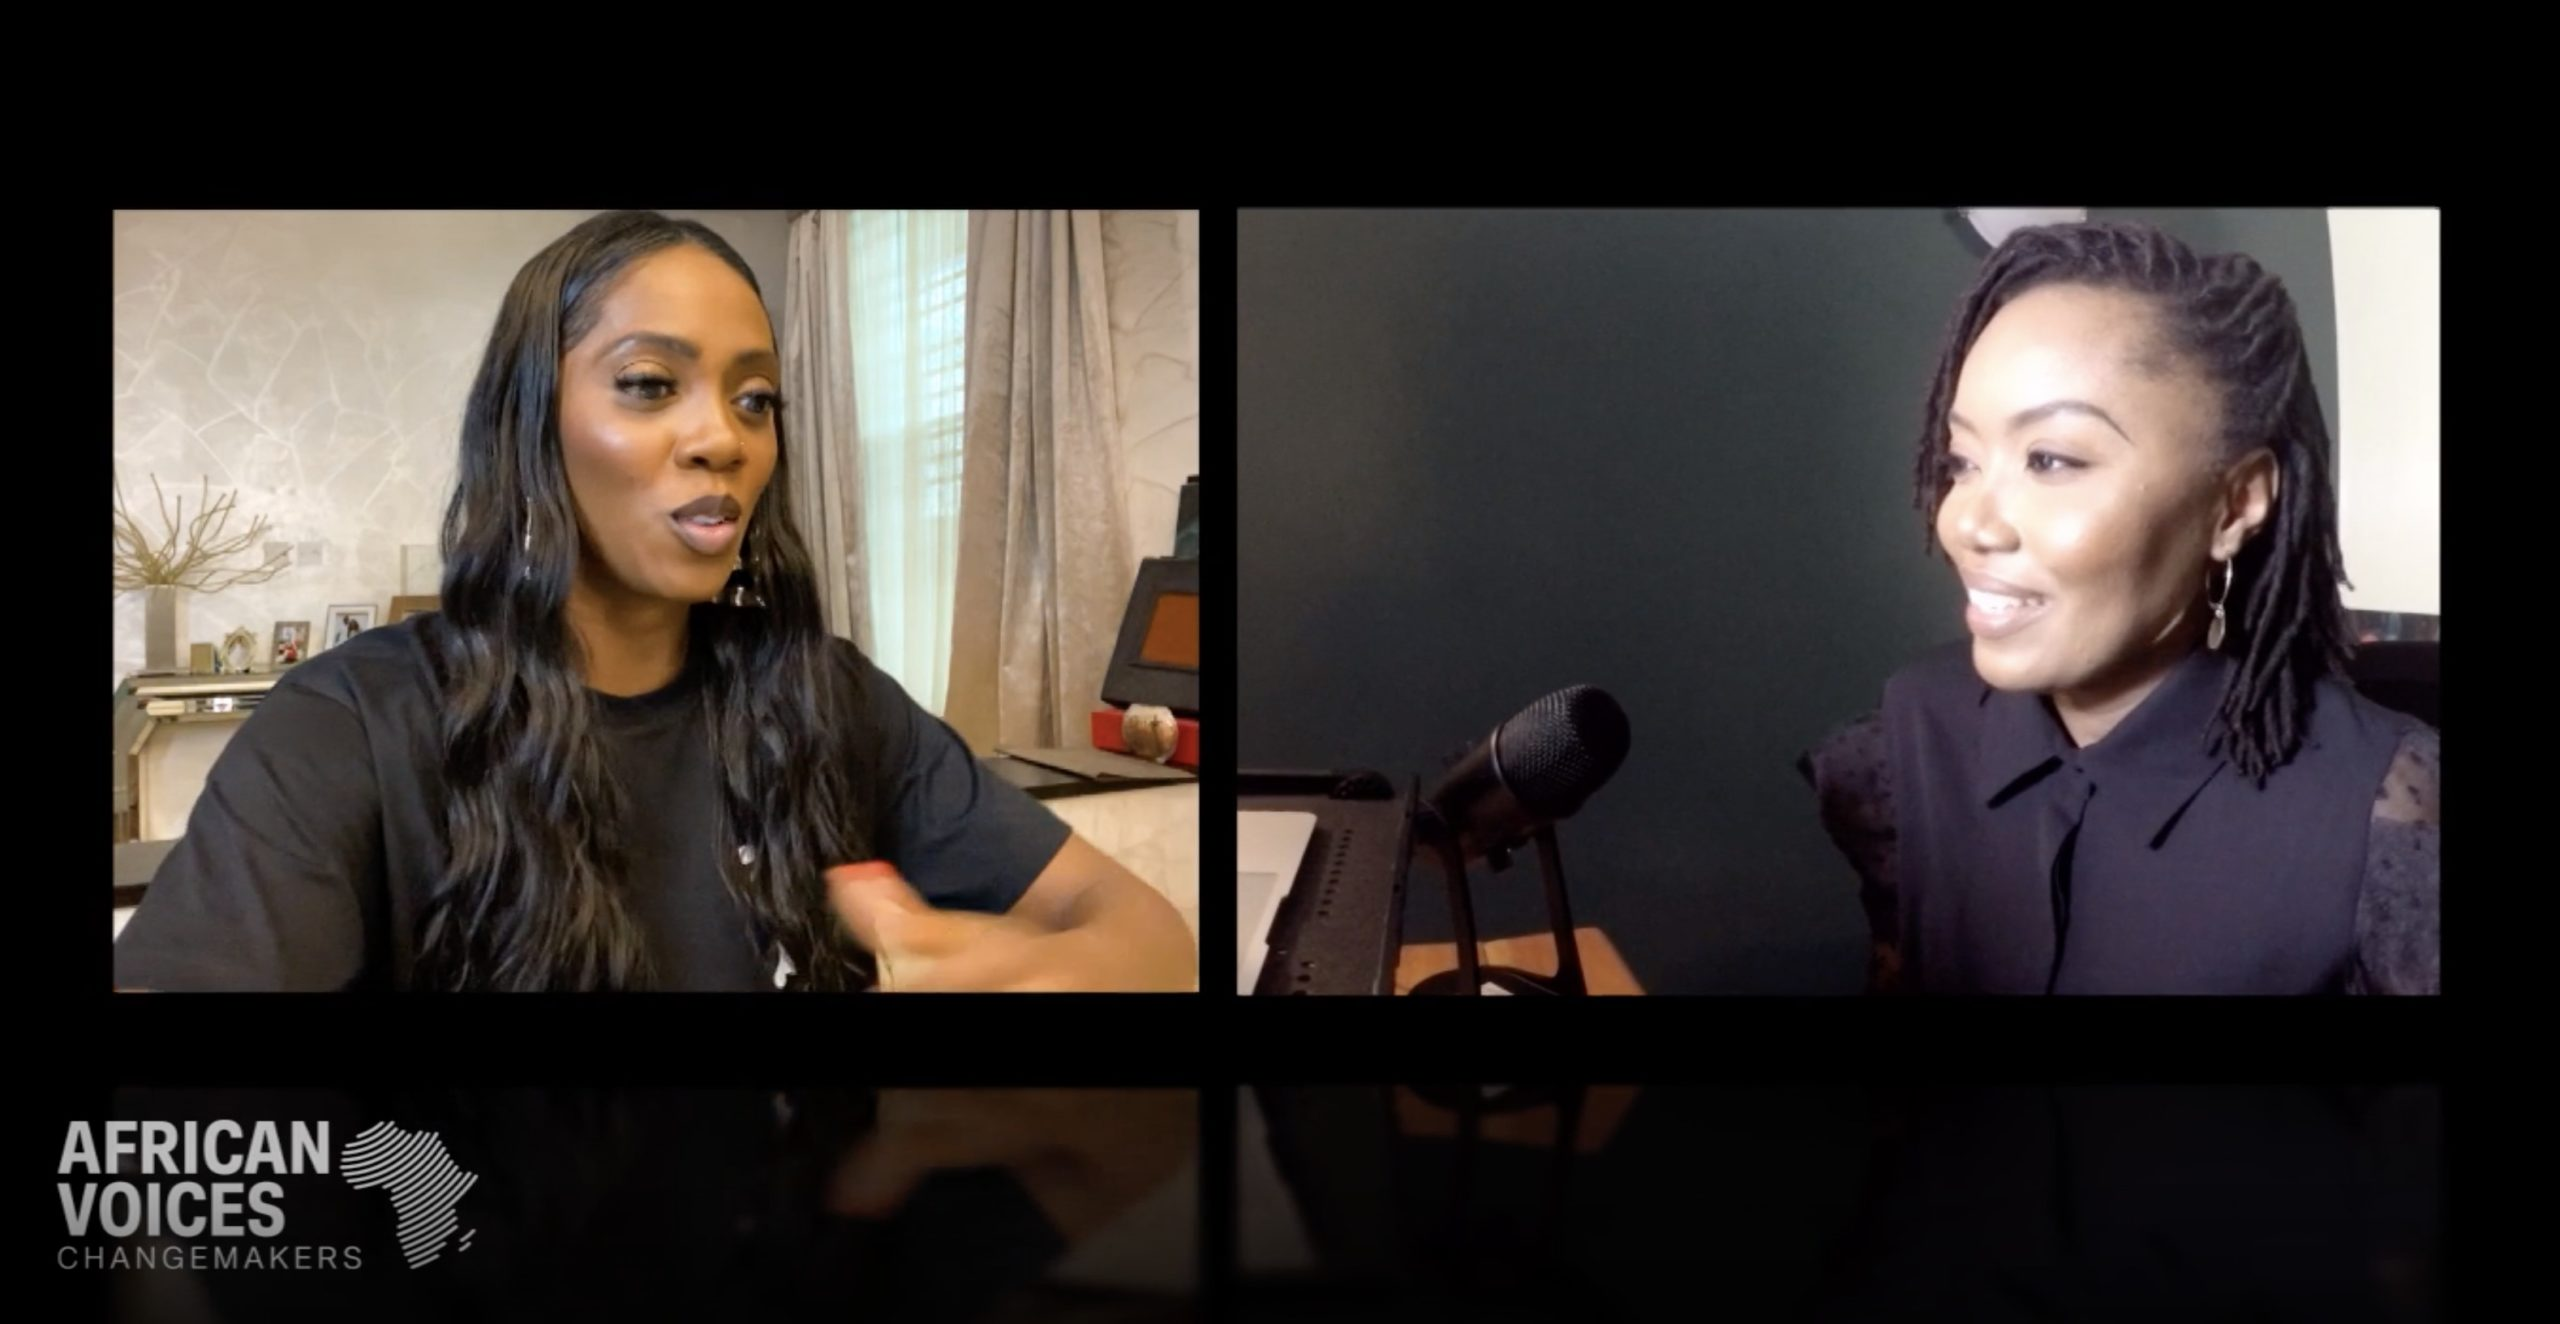 CNN's African Voices Changemakers meets Tiwa Savage